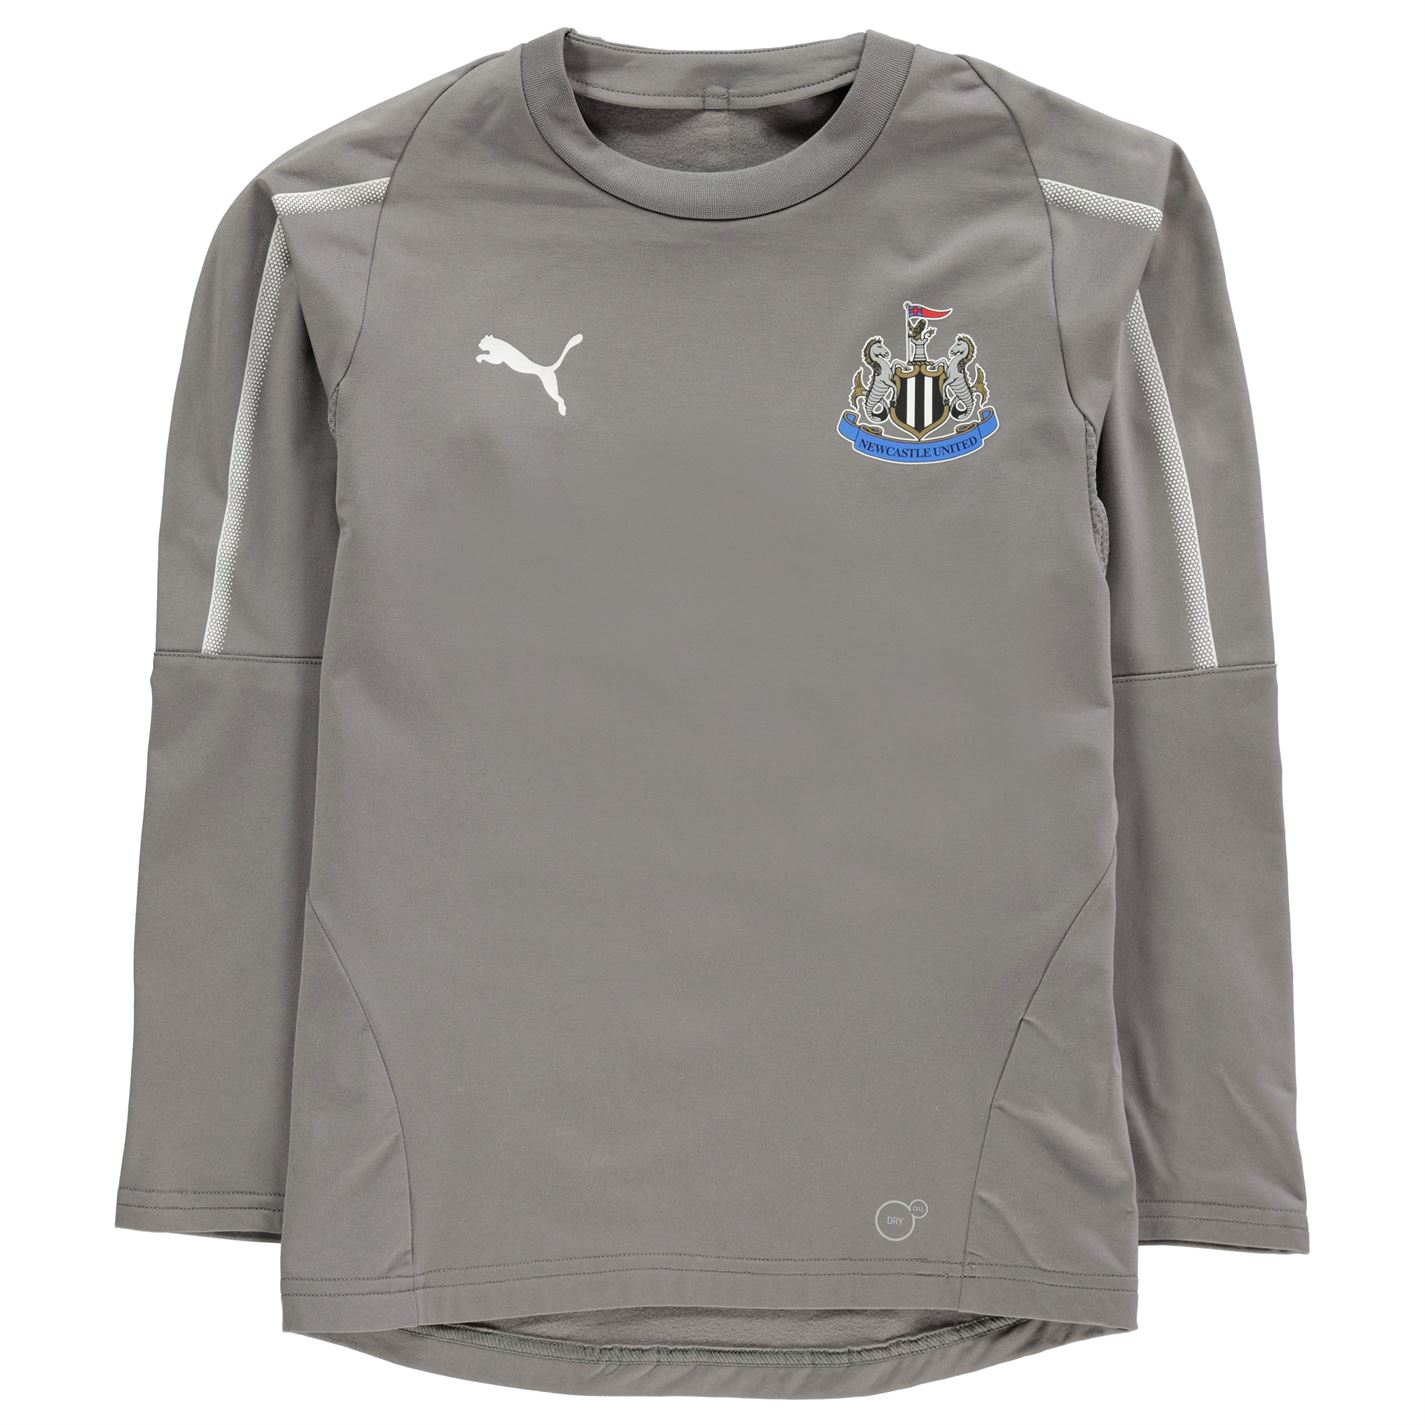 b45f4dfd5071 Puma Newcastle United Training Sweatshirt 2018 2019 Grey. Puma Newcastle  United Training Sweatshirt 2018 2019 Grey